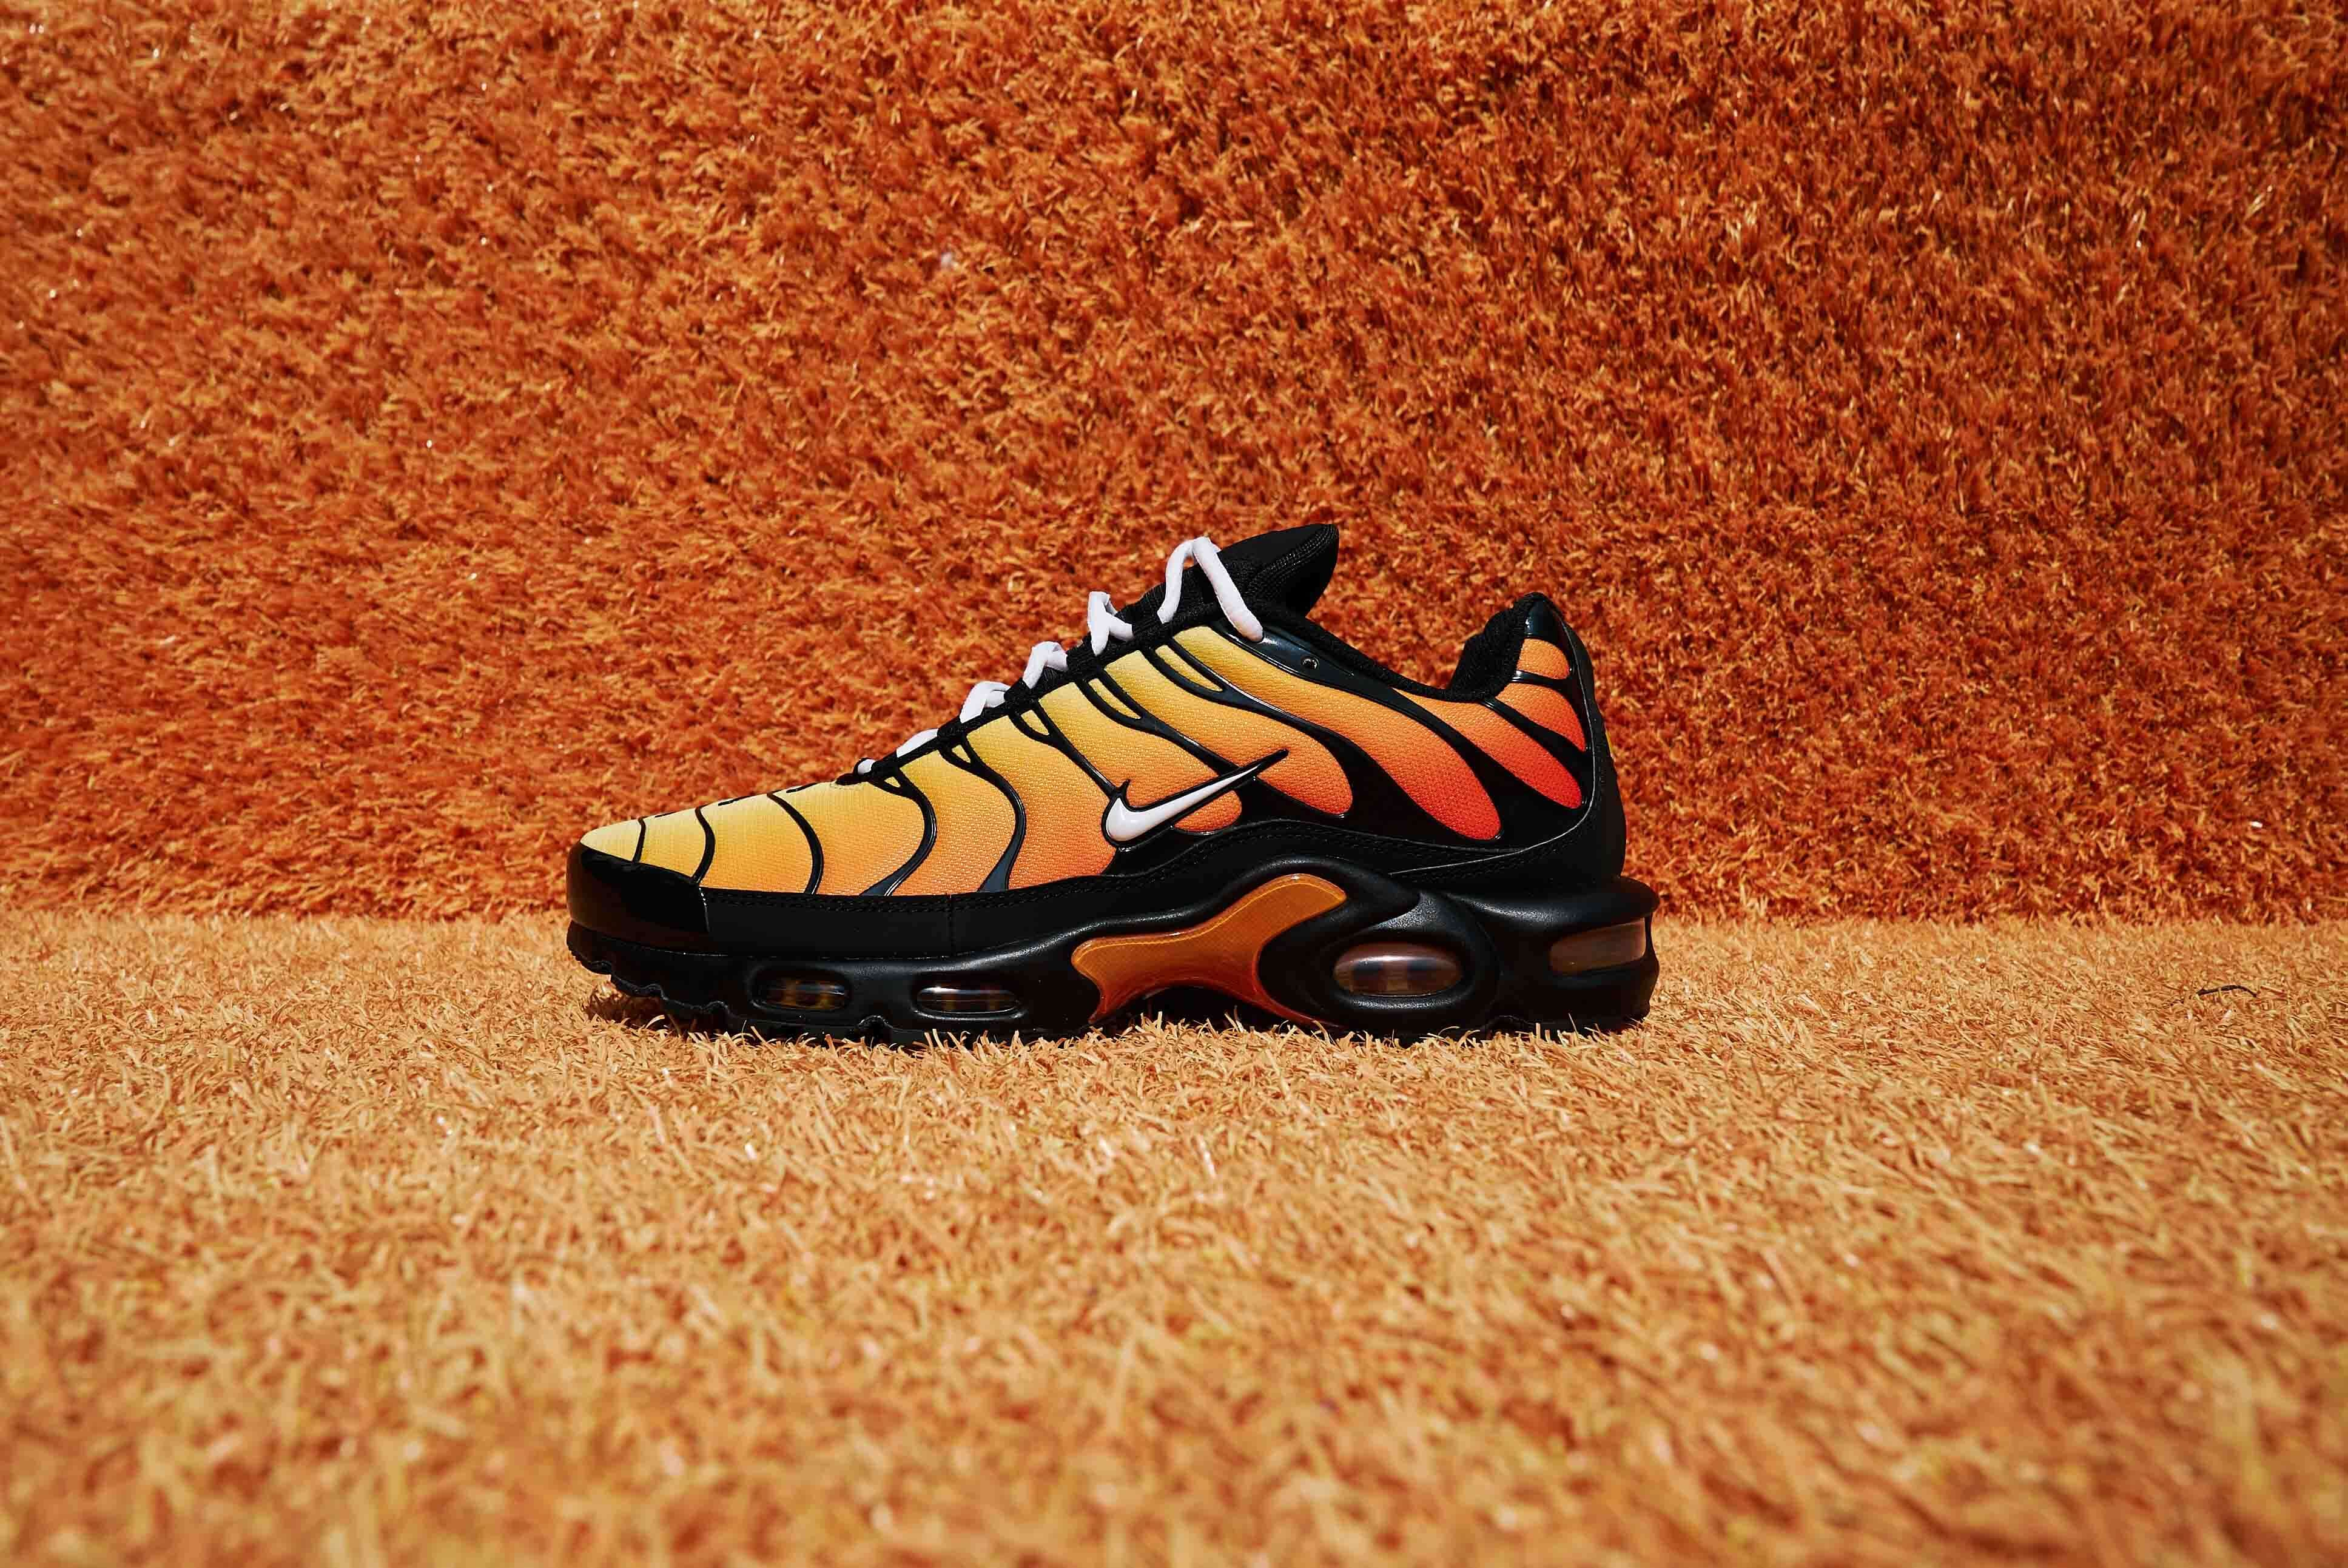 The Nike TN Air Max Plus 'Tiger' Is FLAMES